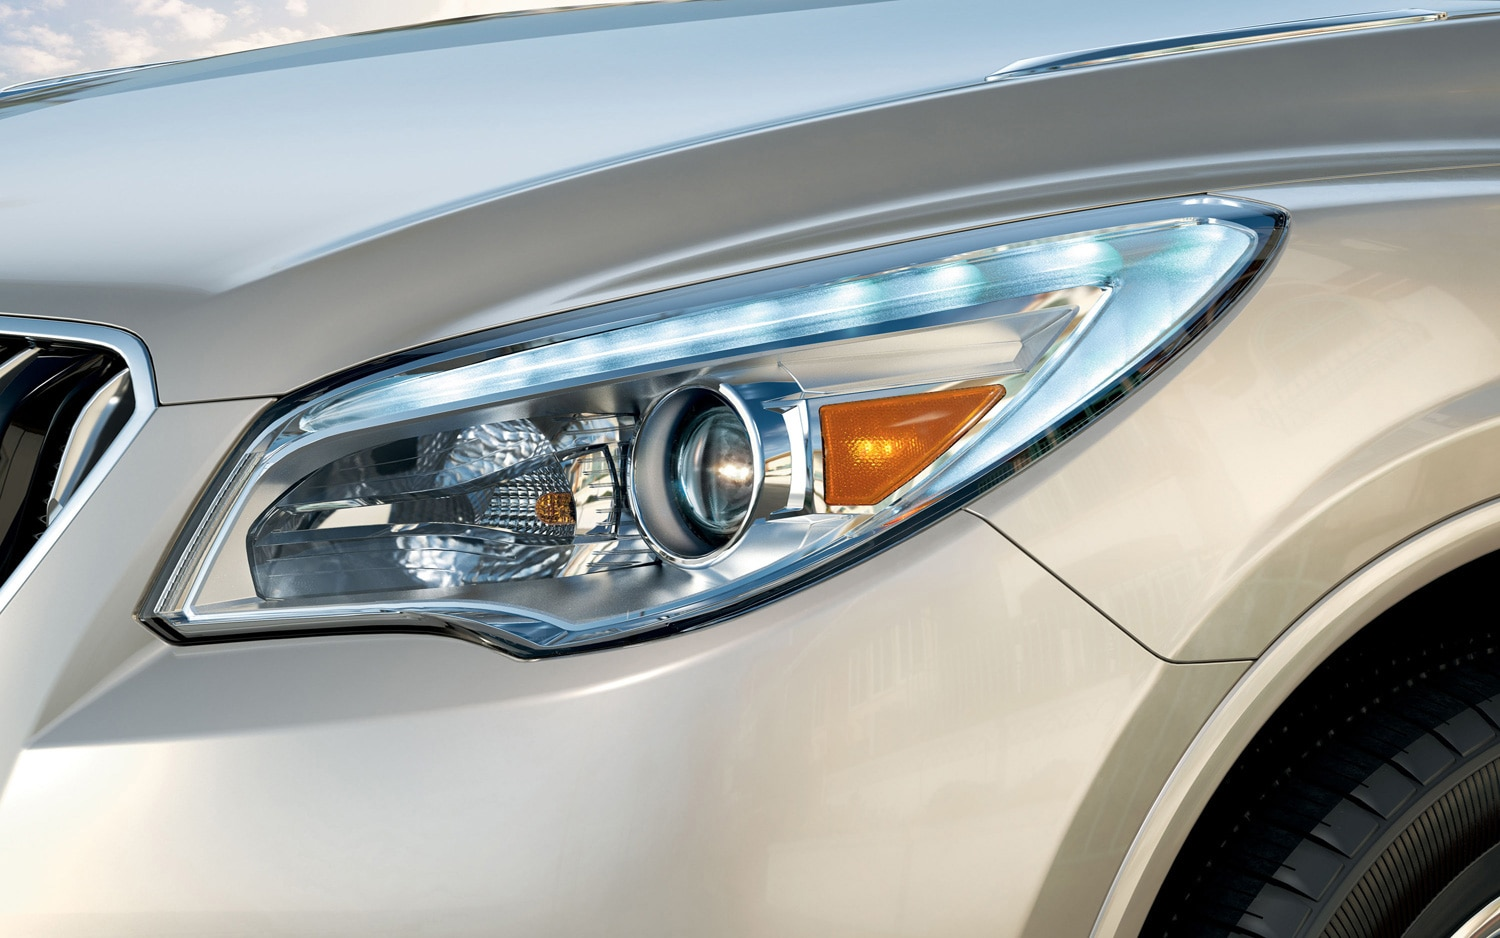 2013 Buick Enclave Headlamp